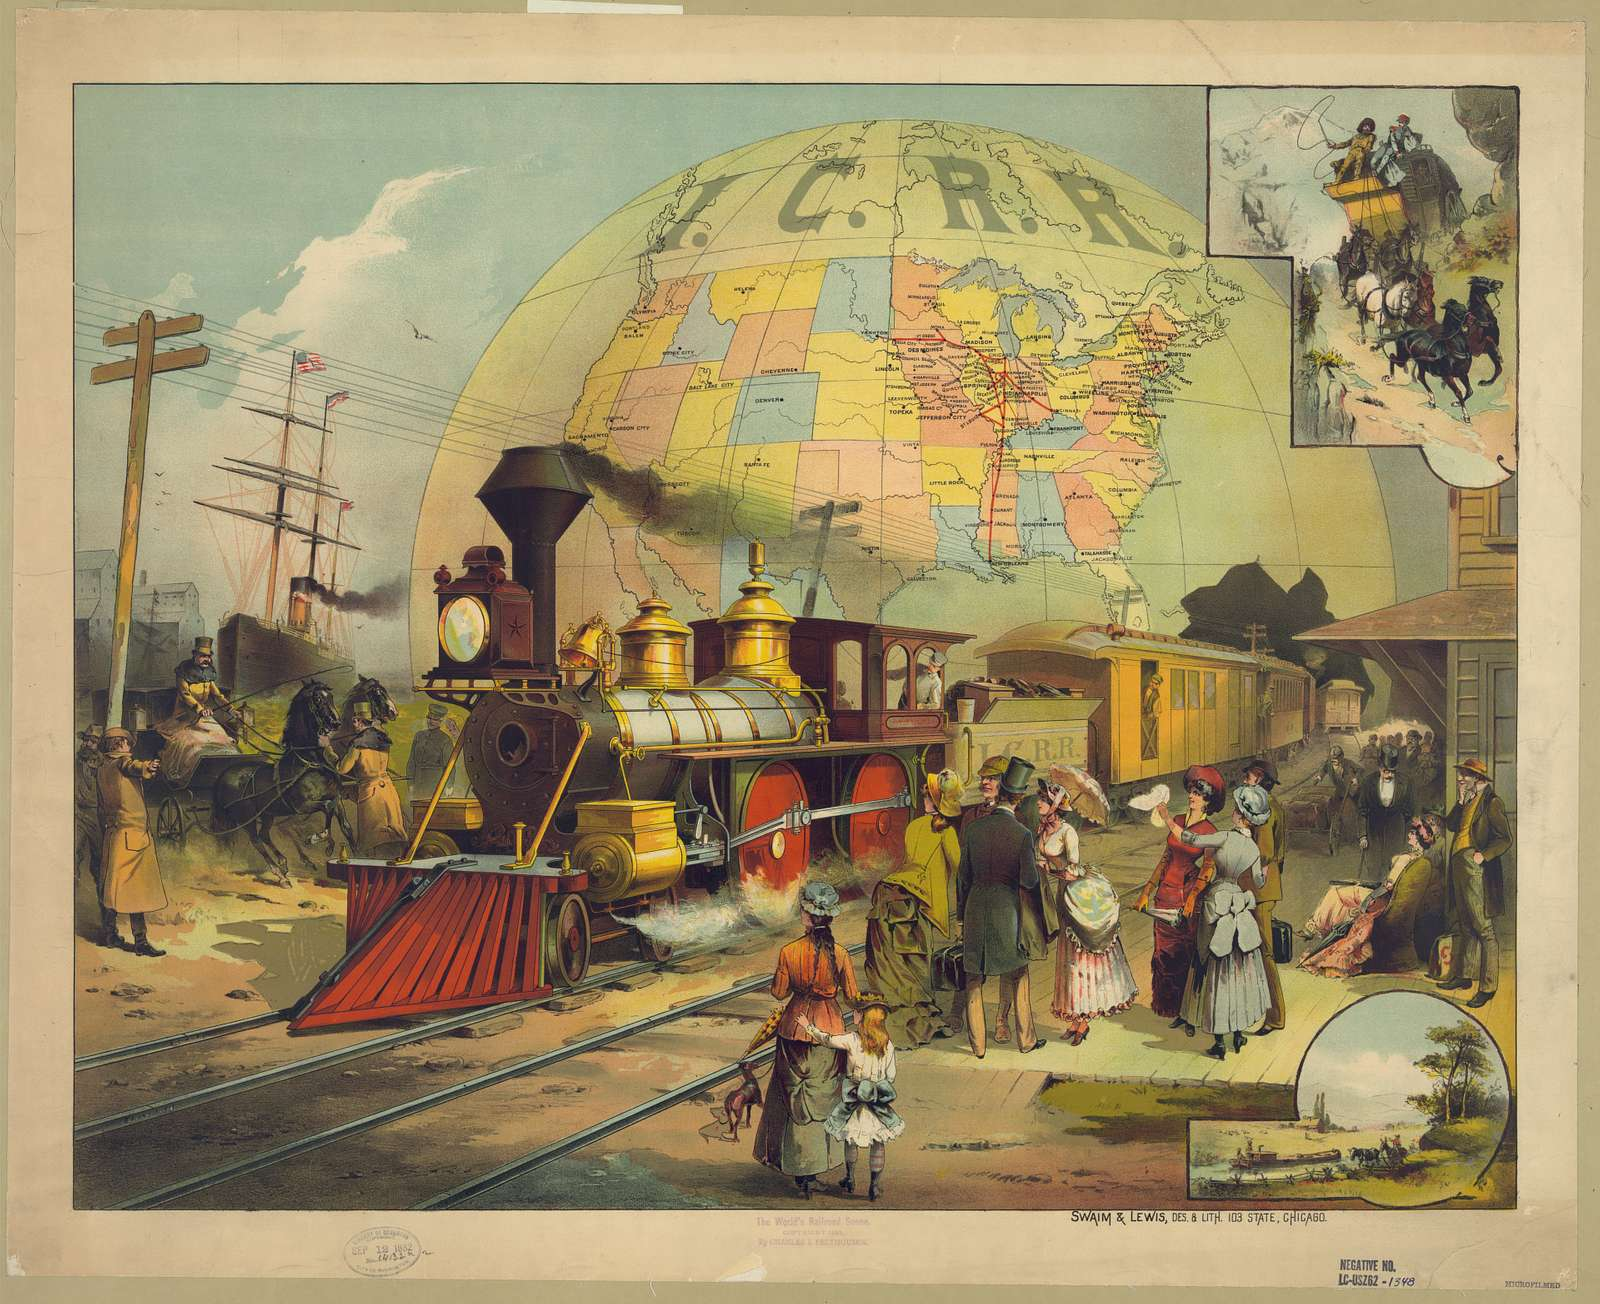 The world's railroad scene / Swain & Lewis, des. & lith. 103 State, Chicago.